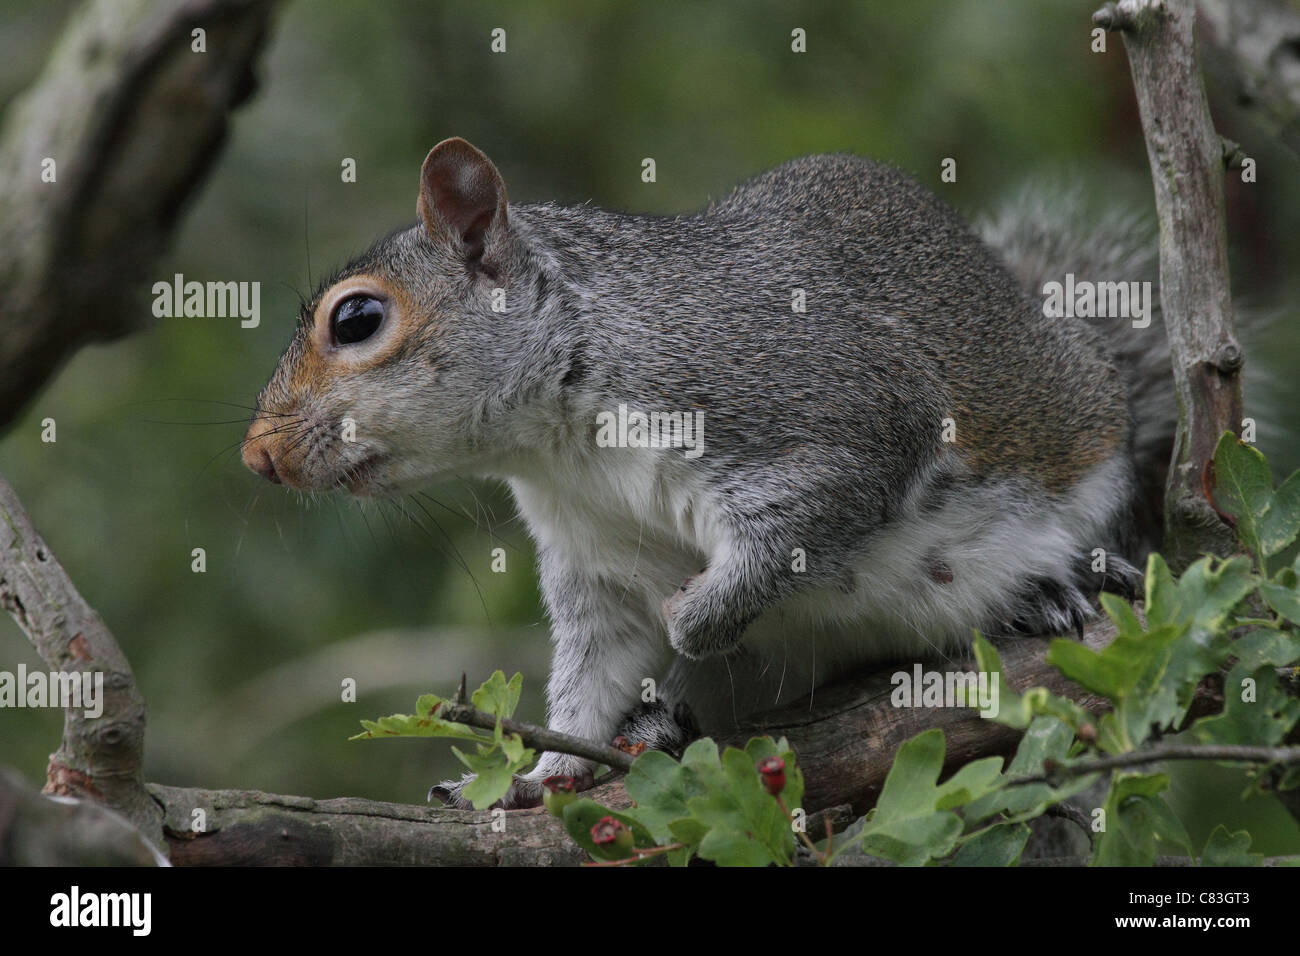 gray Squirrel up close detailed - Stock Image